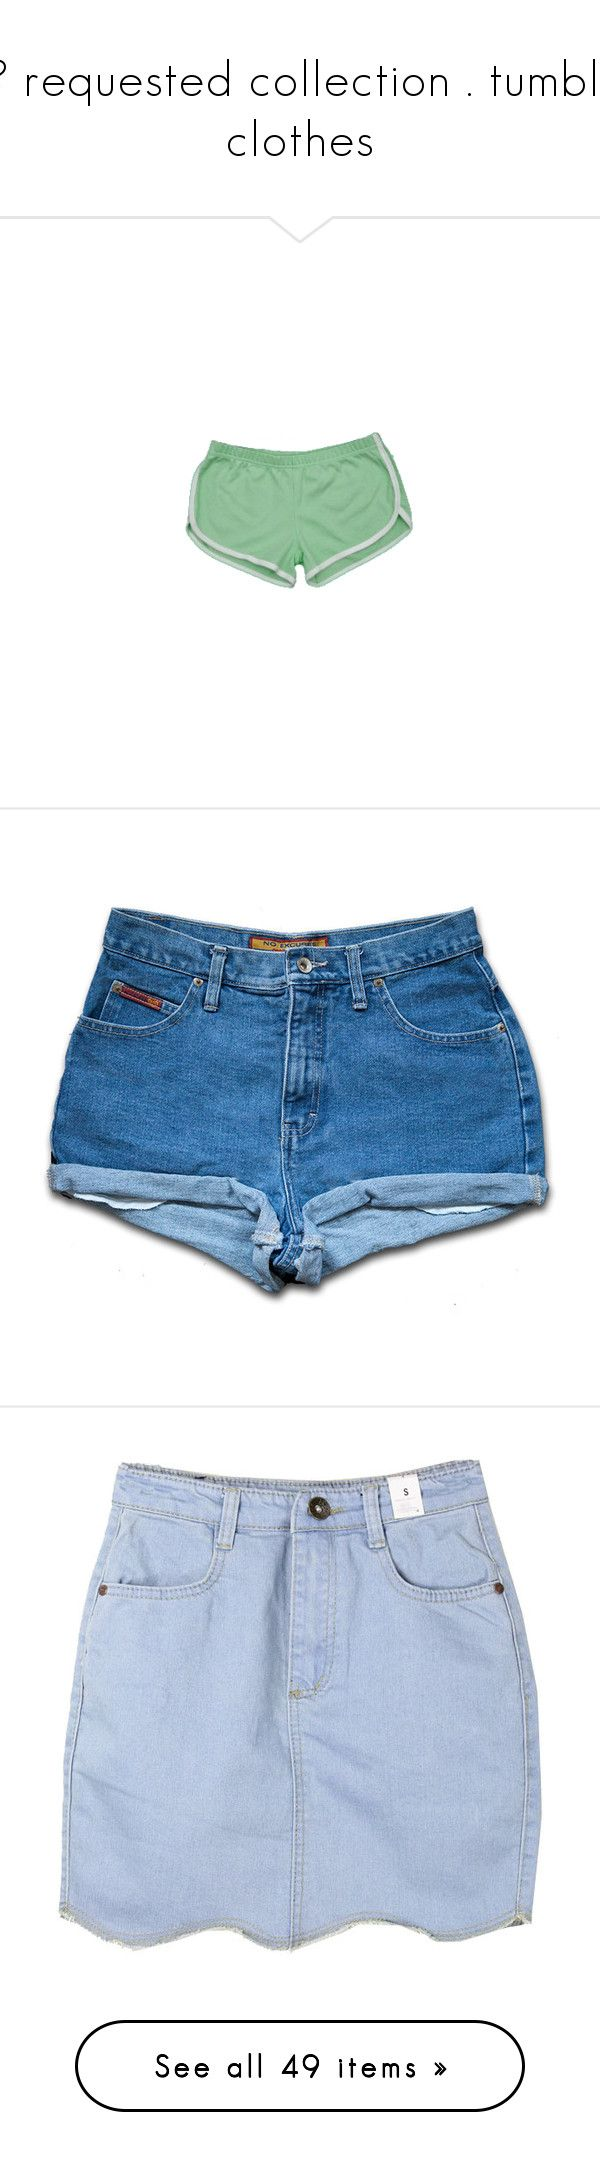 """☃ requested collection . tumblr clothes"" by hxney-dew ❤ liked on Polyvore featuring shorts, bottoms, short, pants, filler, jeans, vintage jean shorts, high-waisted cut-off shorts, high waisted jean shorts and high-waisted denim shorts"